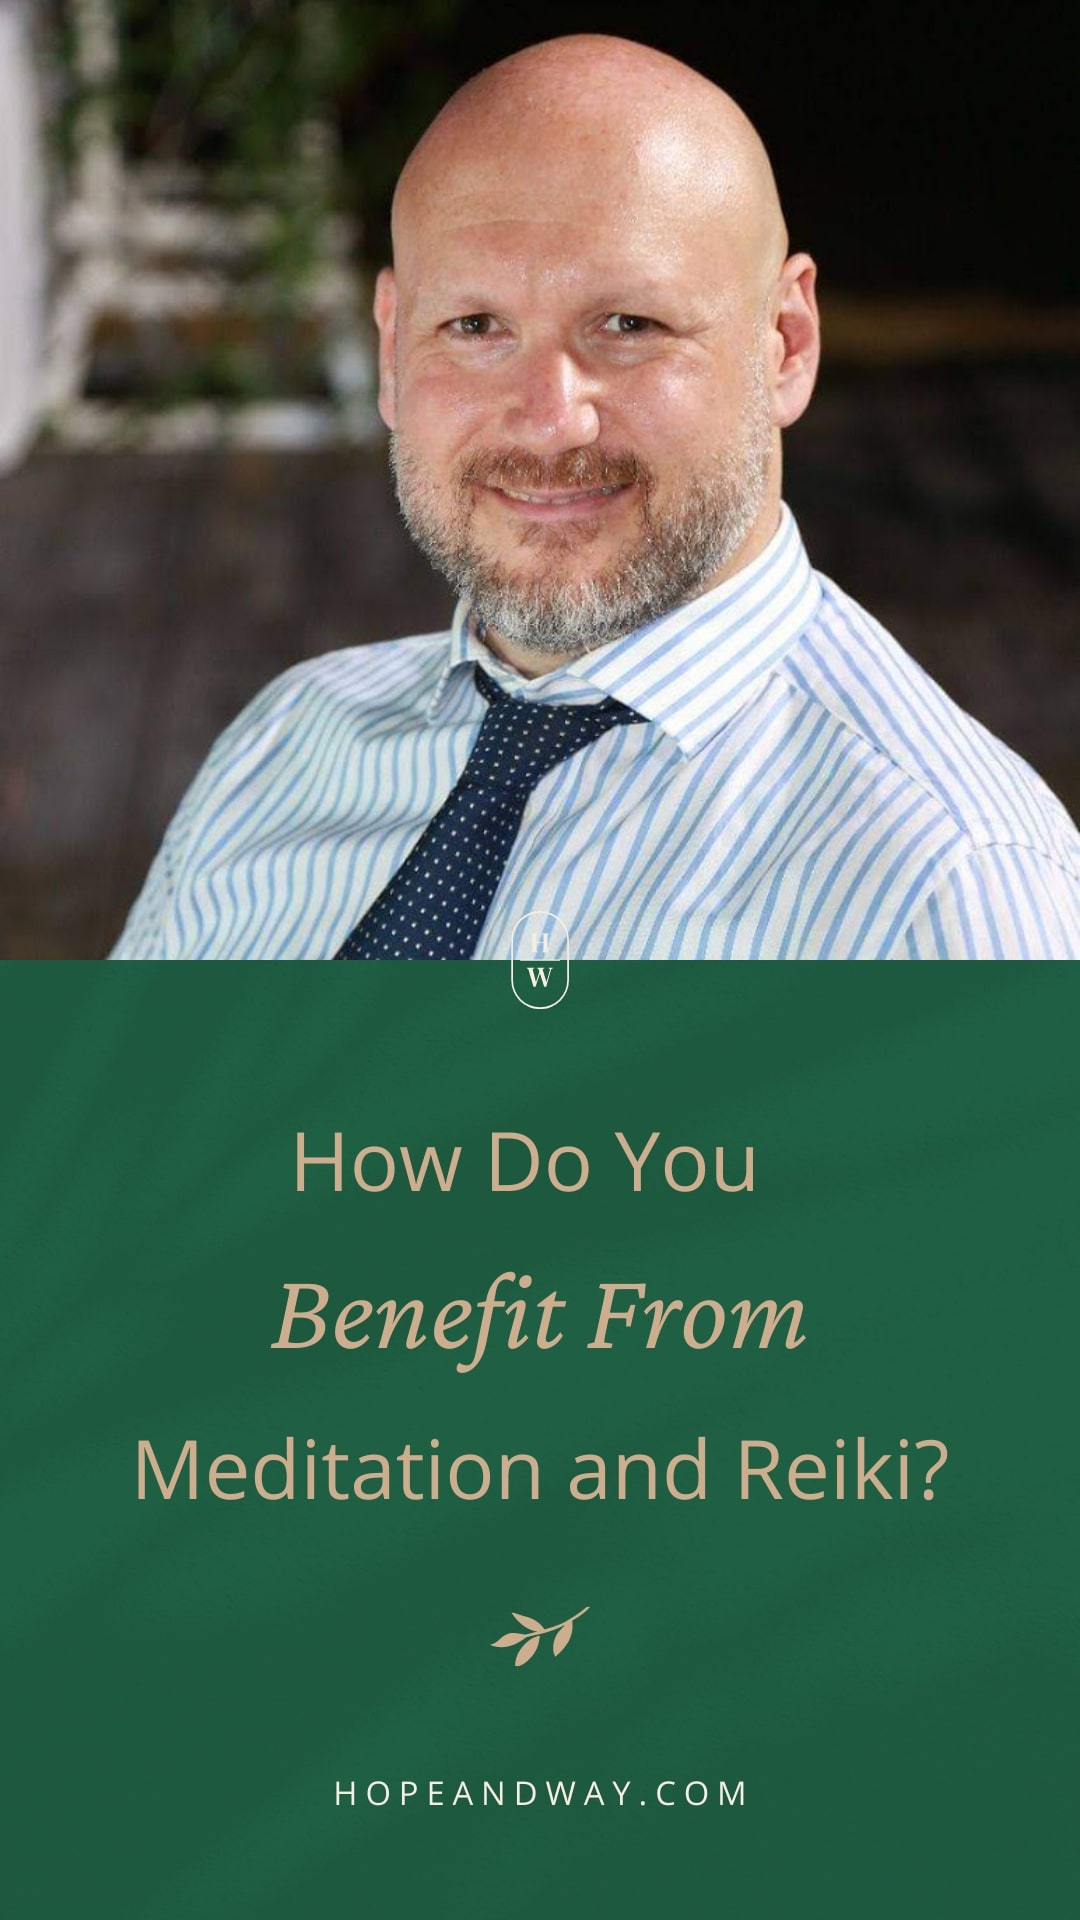 How Do You Benefit From Meditation and Reiki? Interview with Abdo Chouchani